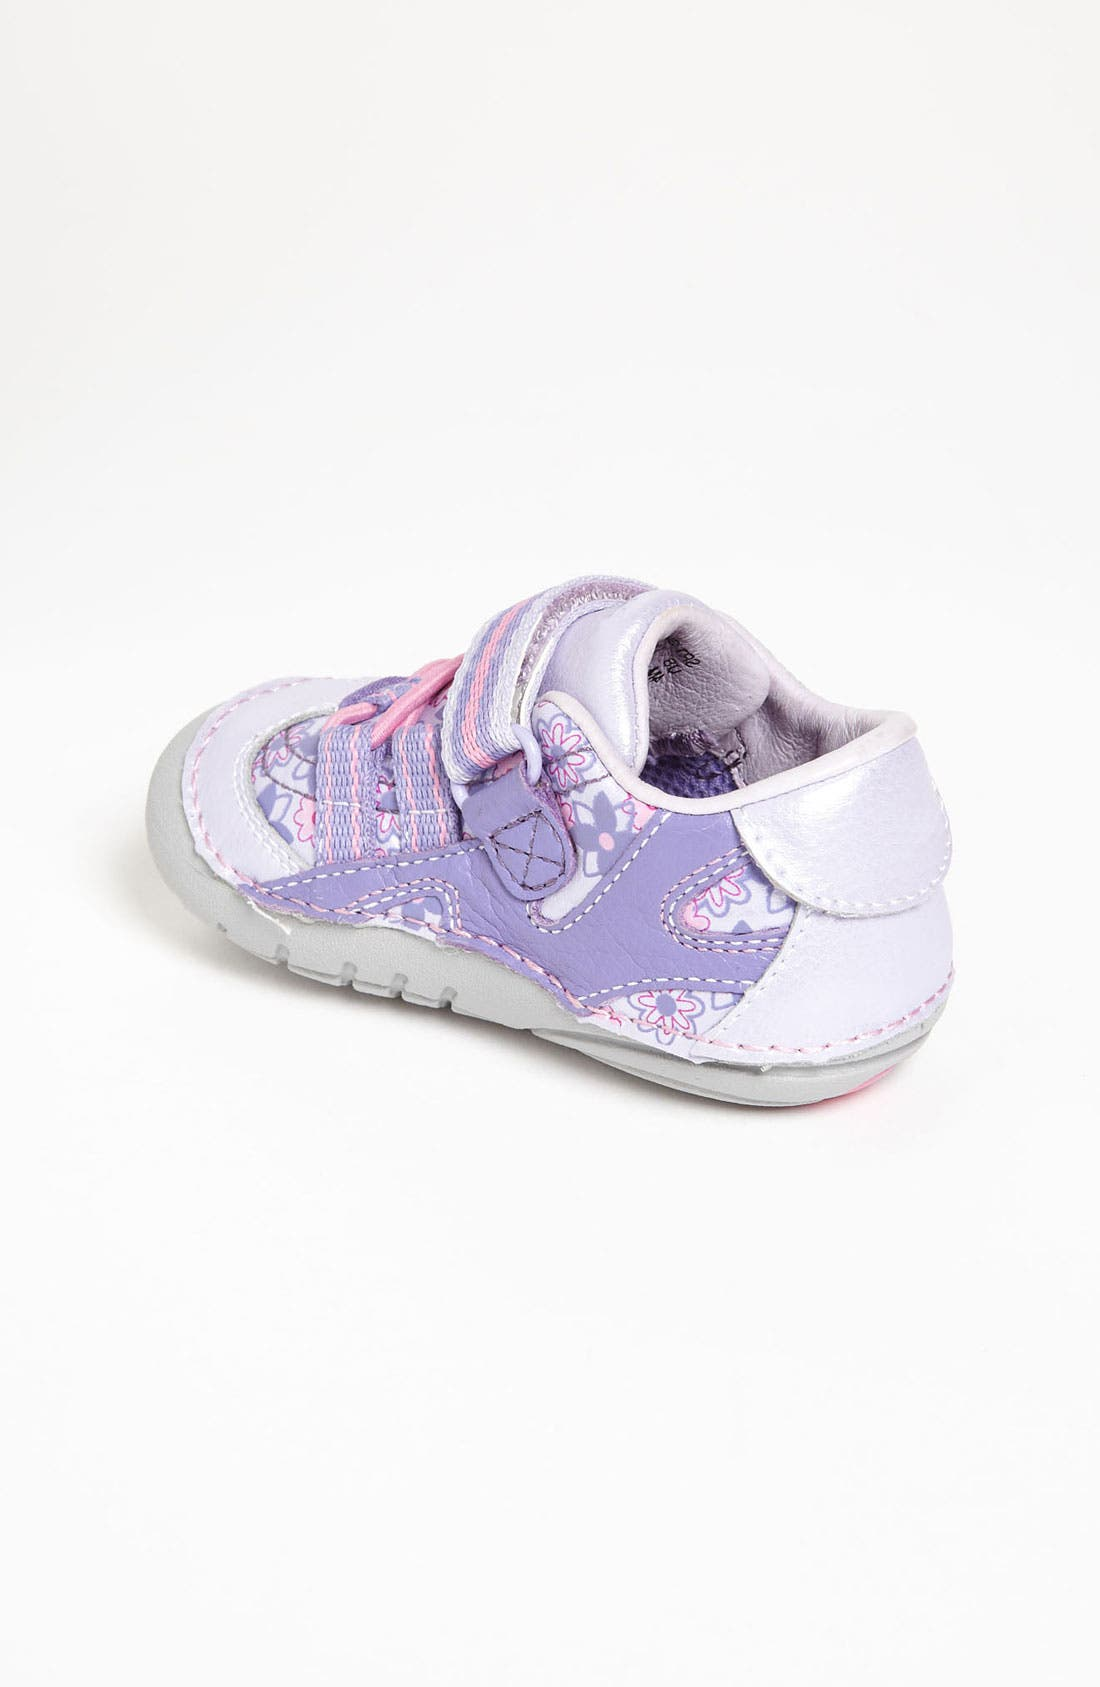 Alternate Image 2  - Stride Rite 'Stephanie' Sneaker (Baby & Walker)